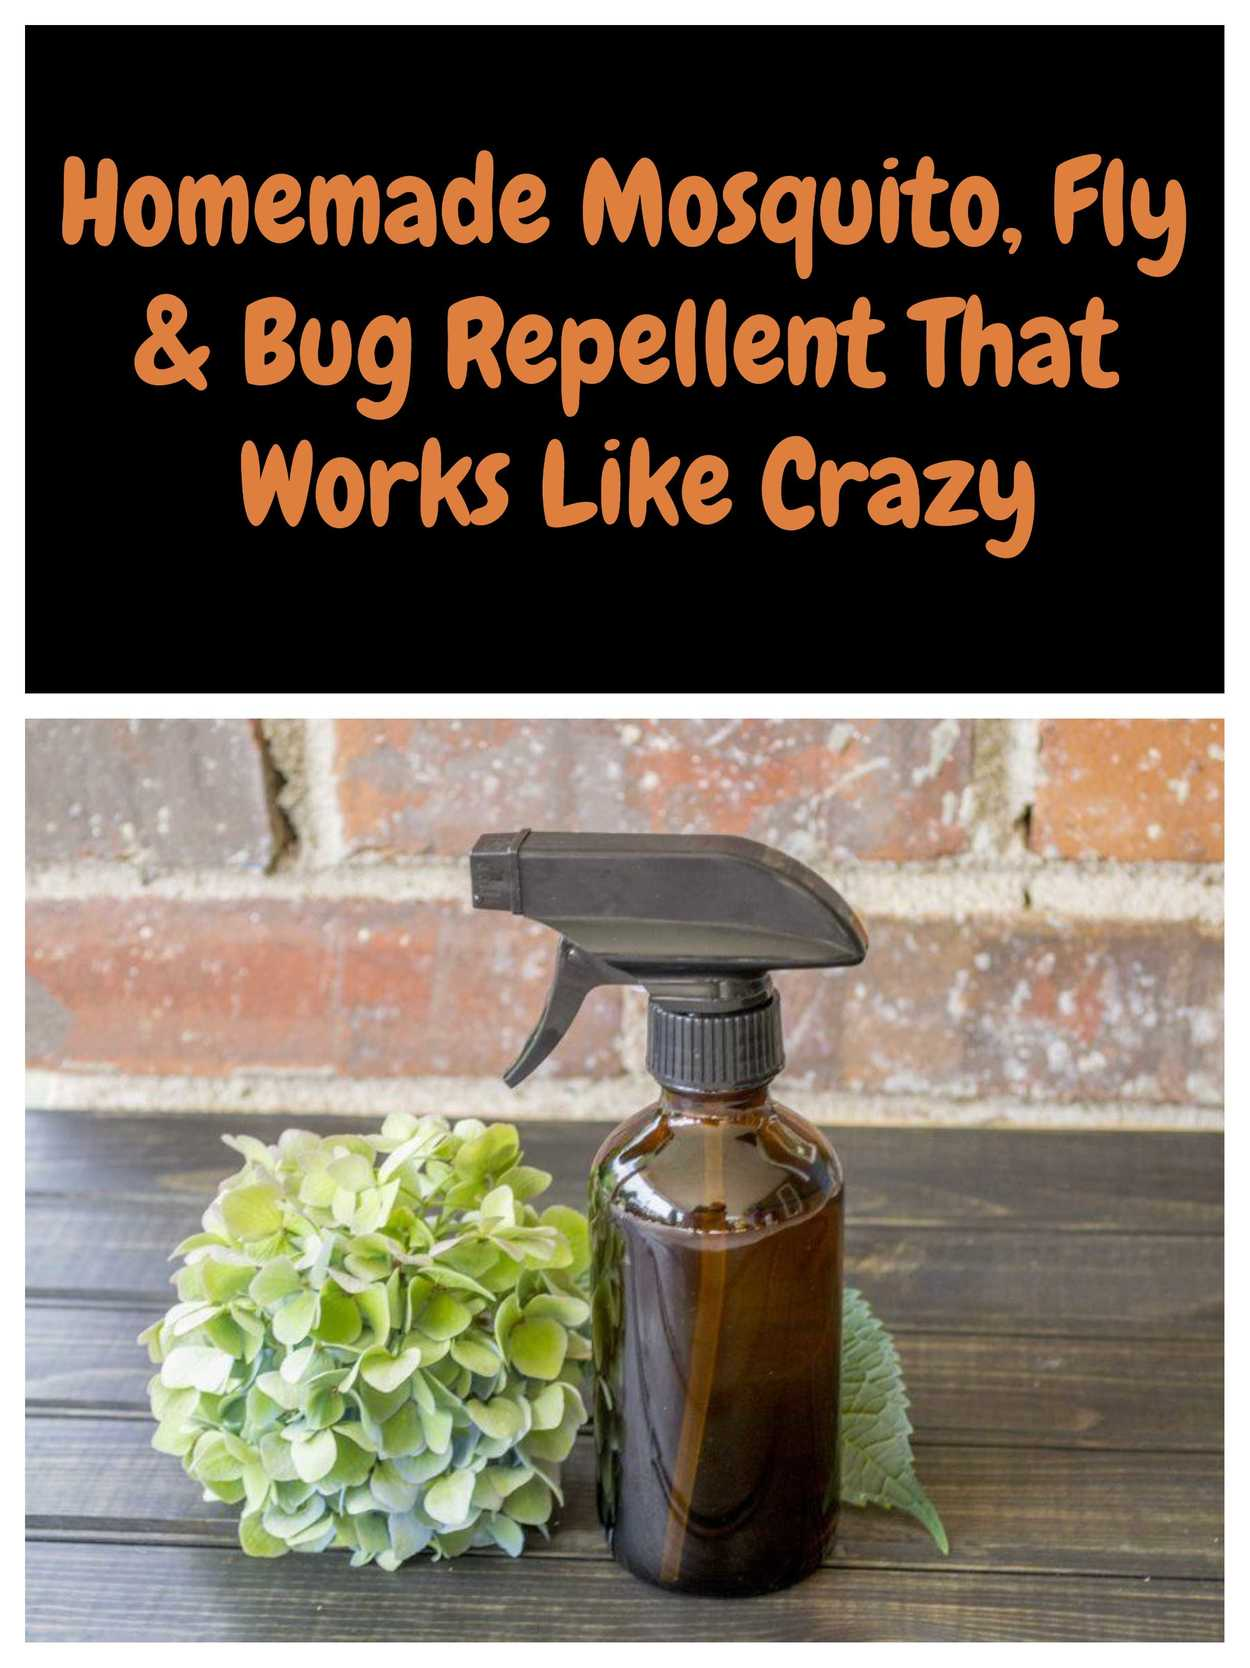 This natural herbal spray will repel mosquitoes, flies and other annoying bugs and stop you getting bitten this summer.